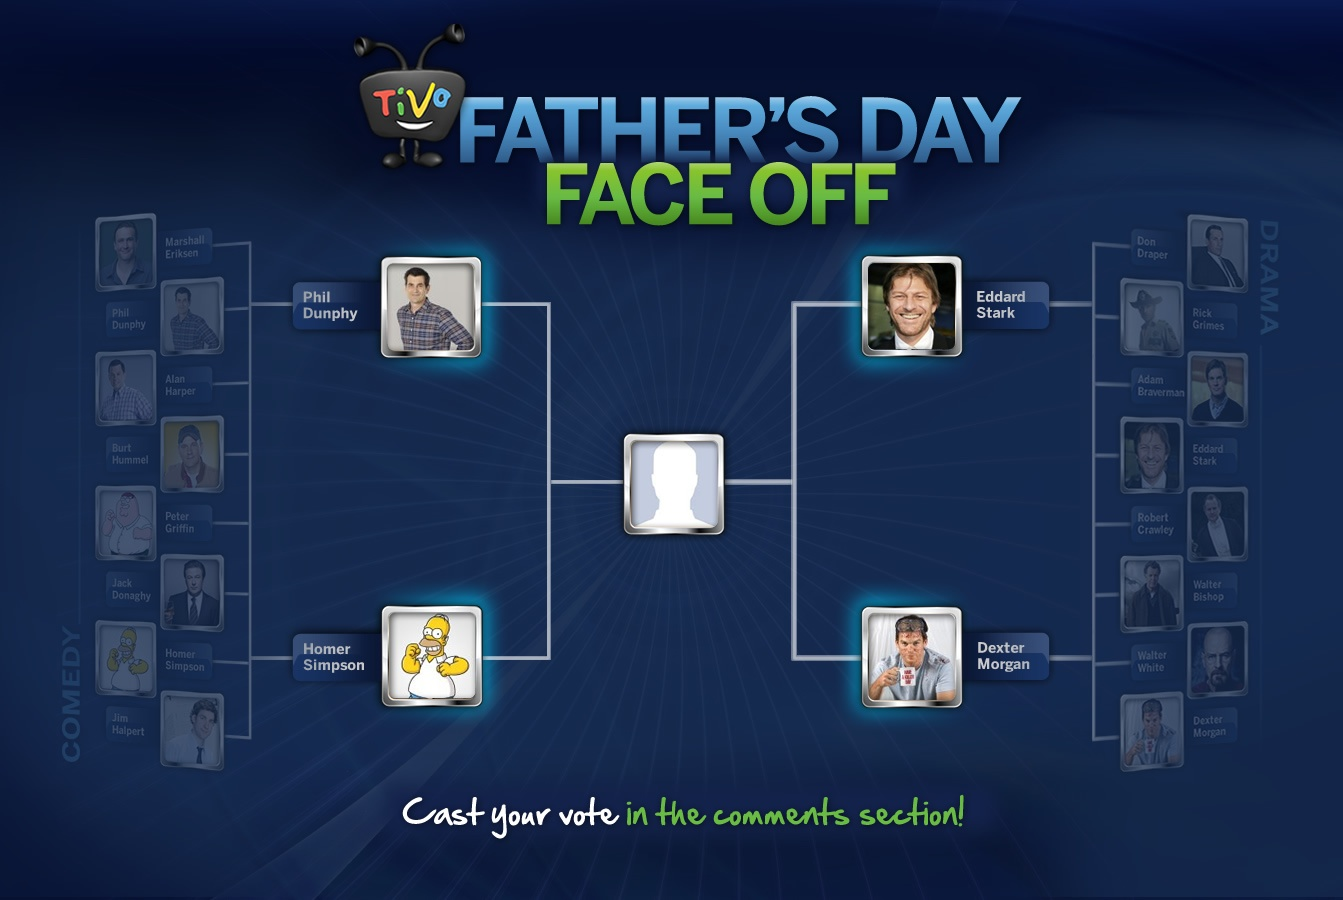 Who will be the ultimate TV Dad?